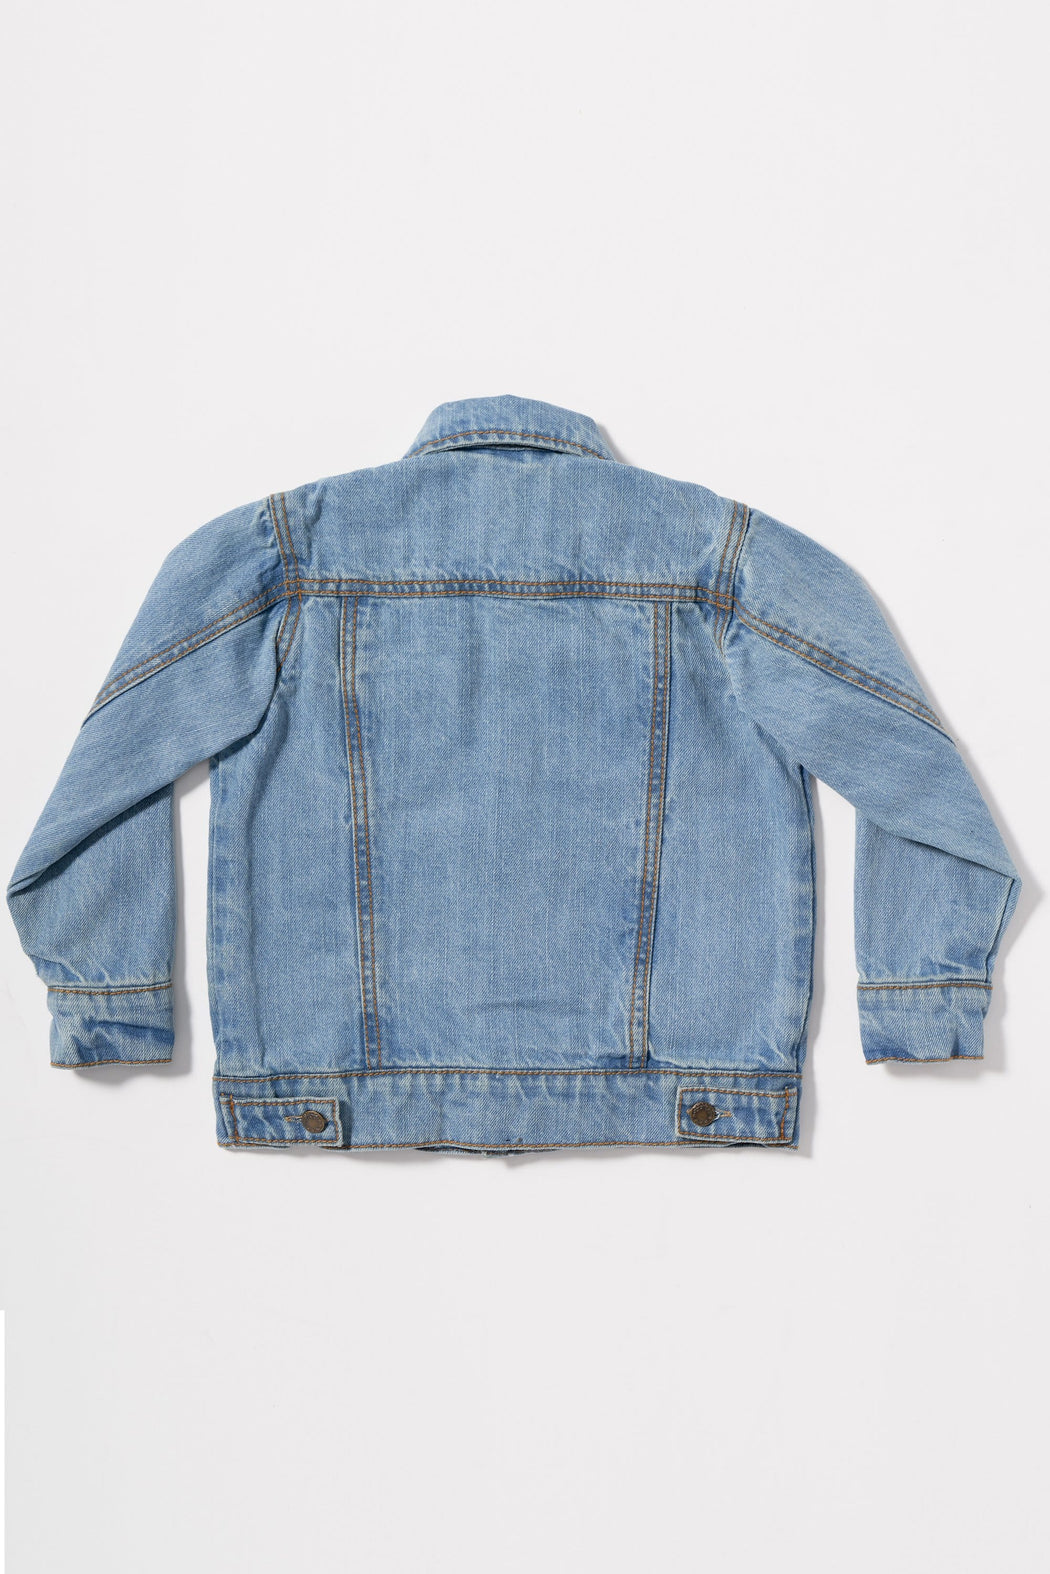 KIDS DENIM JACKET - CUSTOM